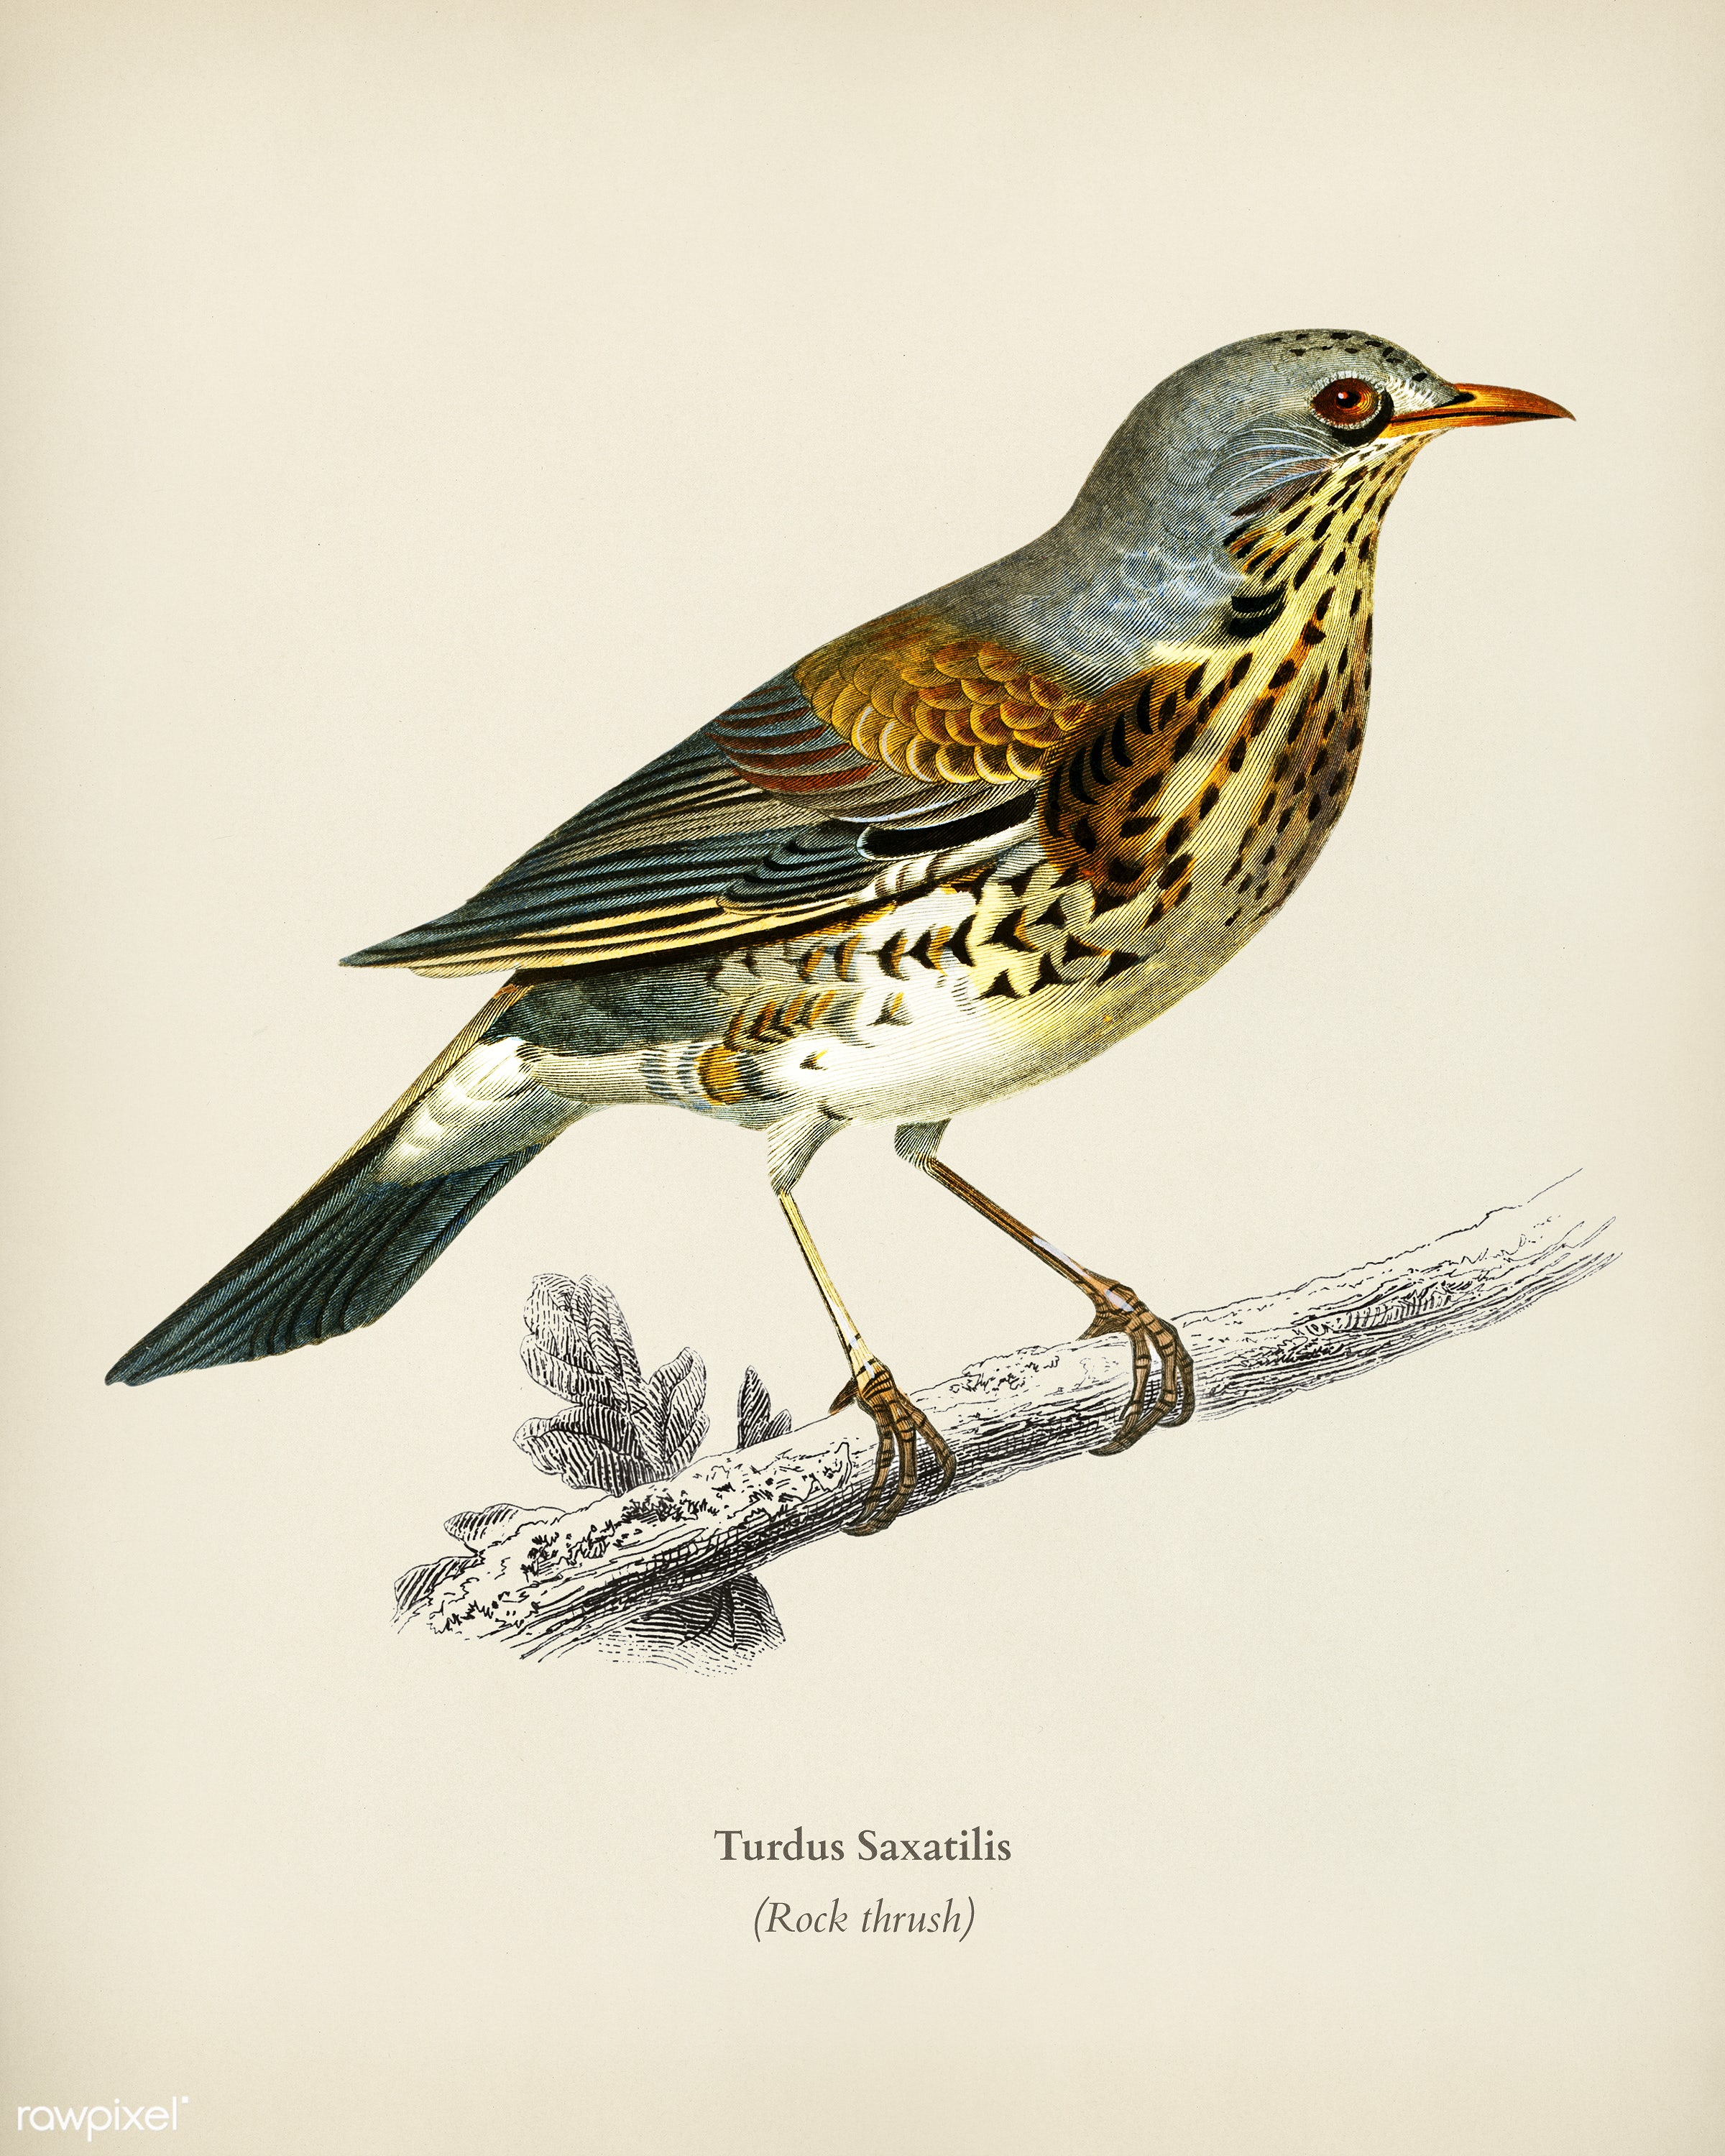 Rock thrush (Turdus Saxatilis) illustrated by Charles Dessalines D' Orbigny (1806-1876). Digitally enhanced from our own...